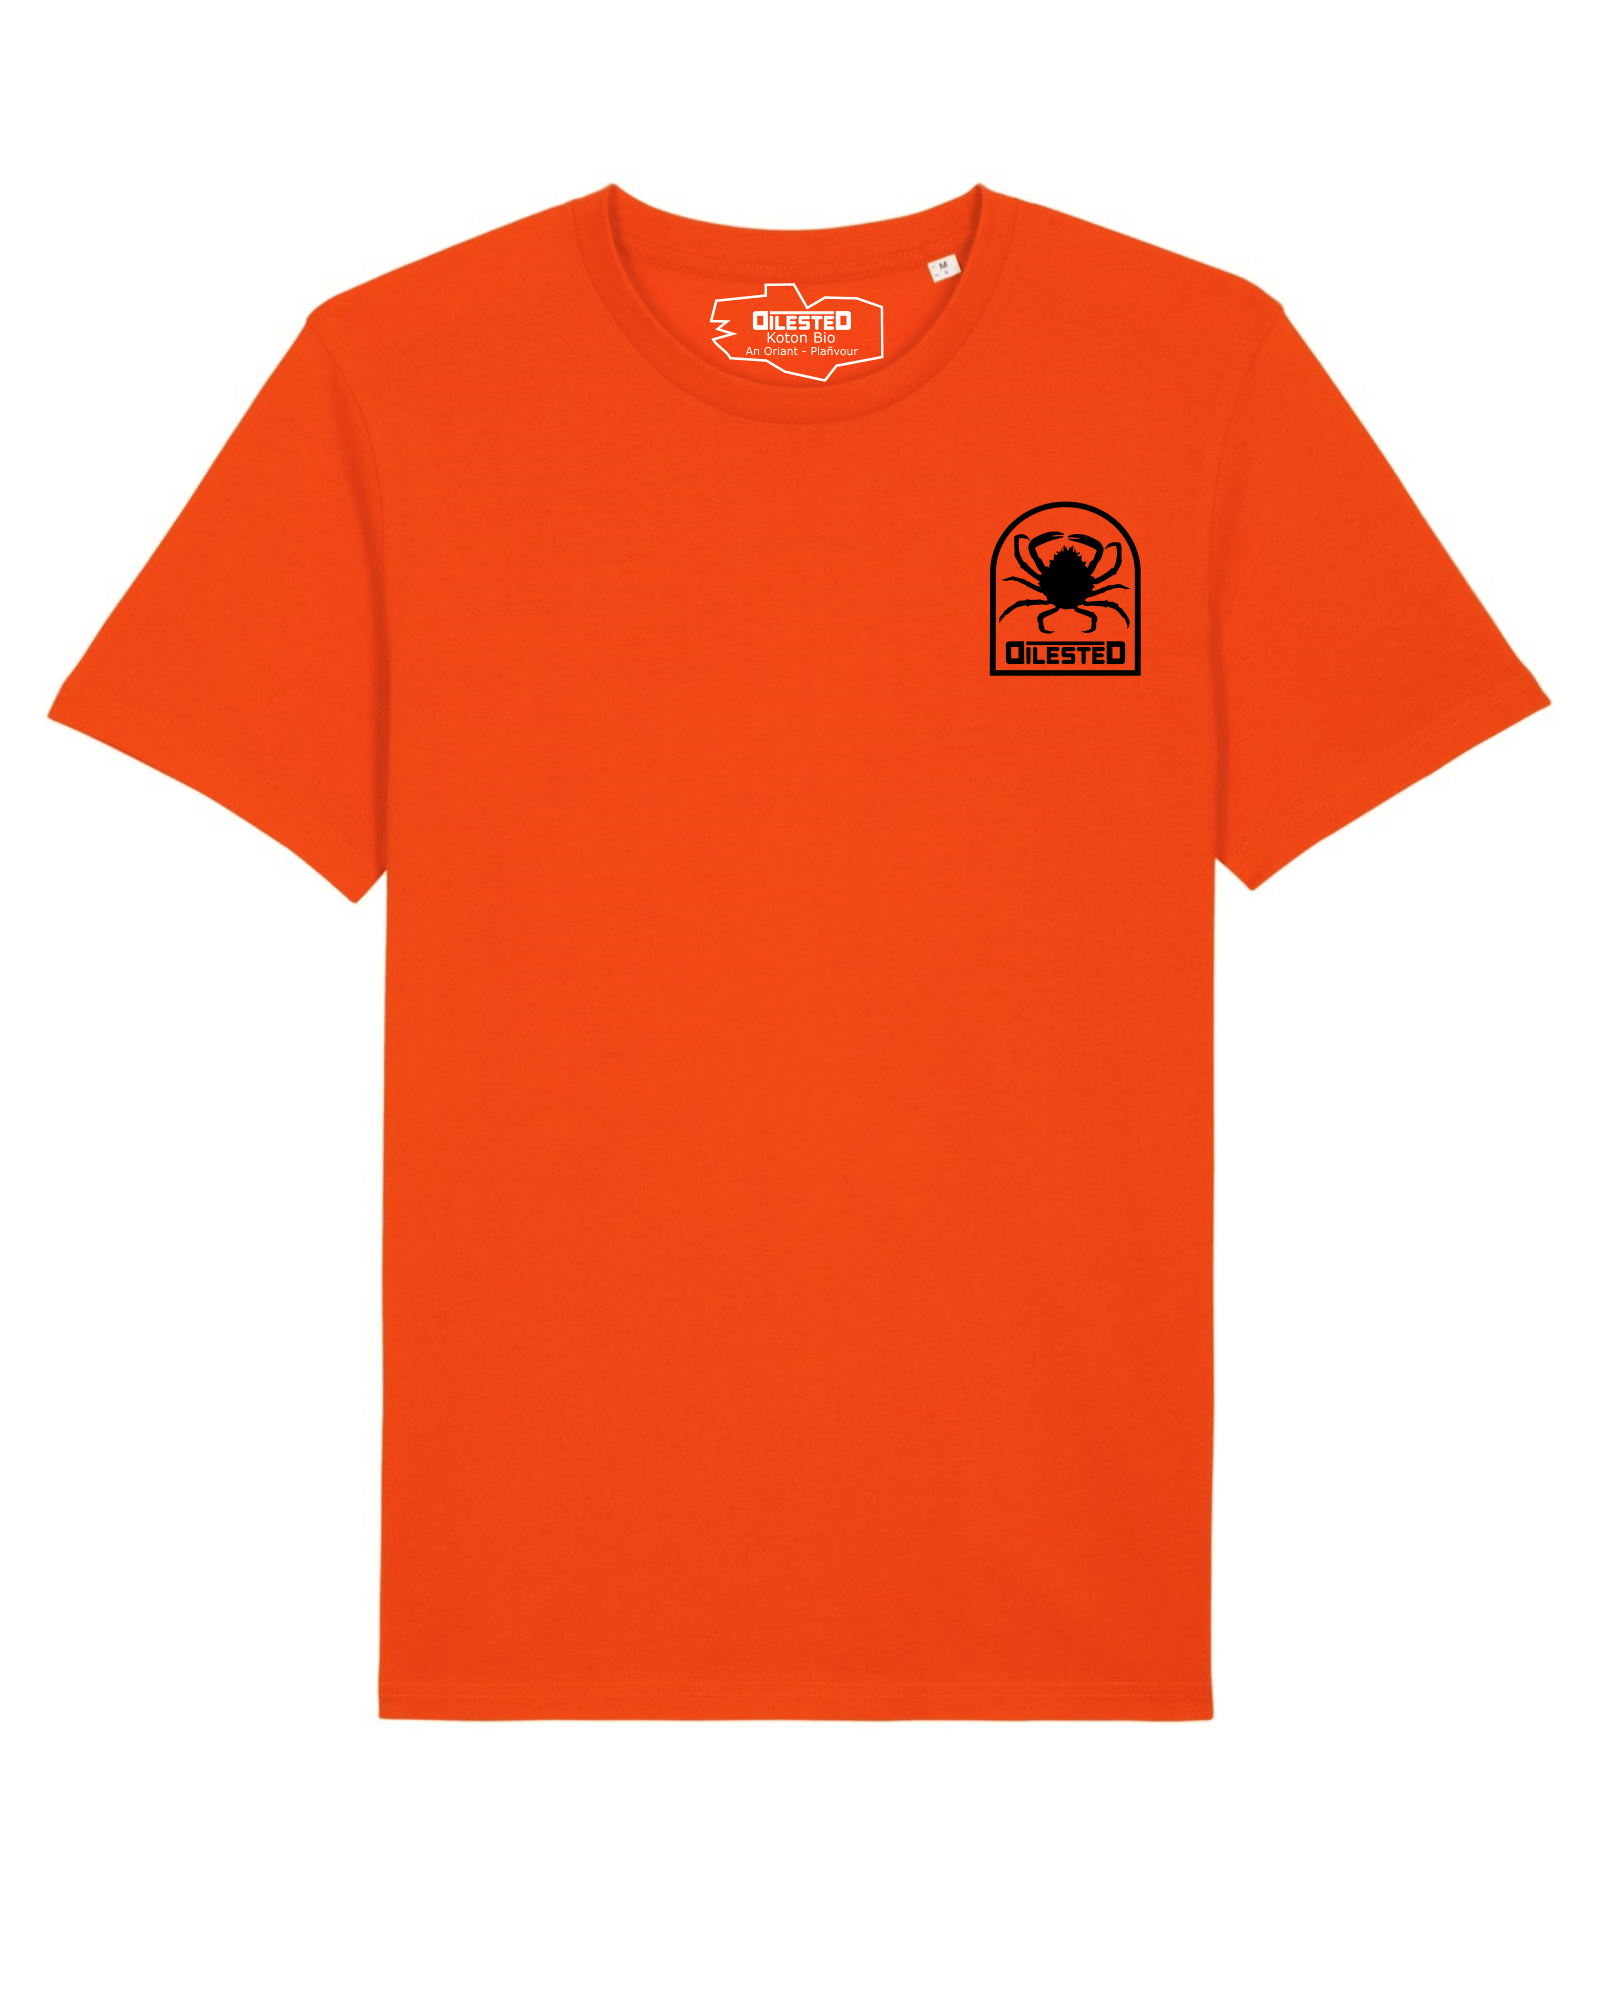 T-shirt Morgevnid Orange - DILESTED